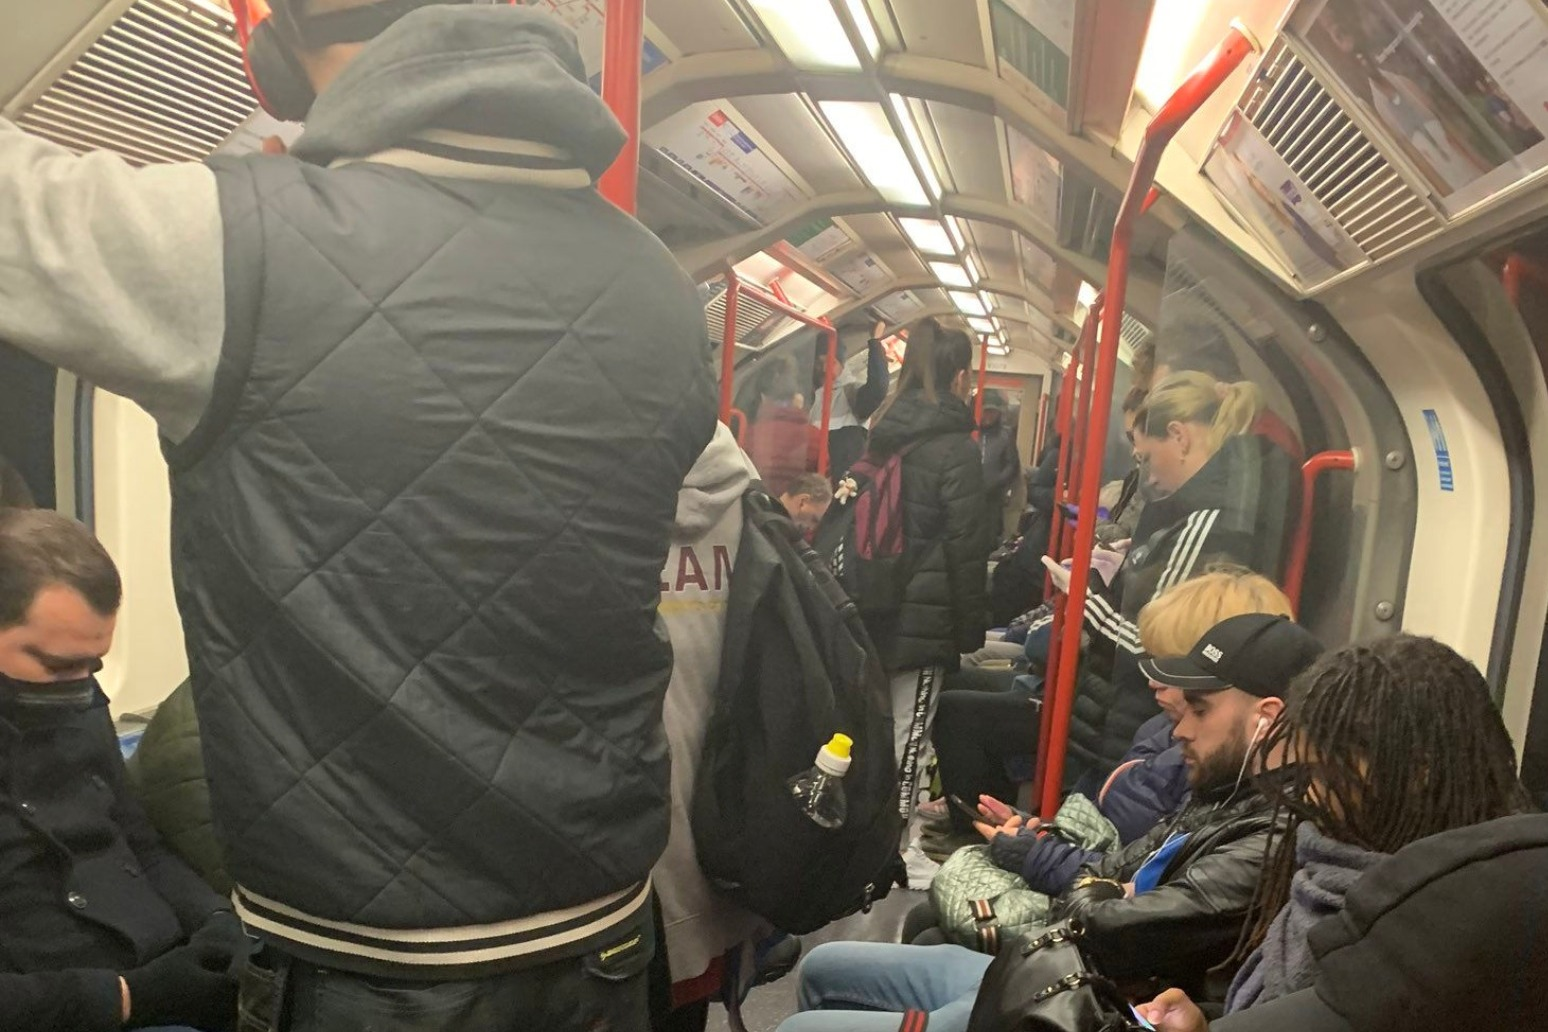 Tube carriages remain packed as politicians row over service levels